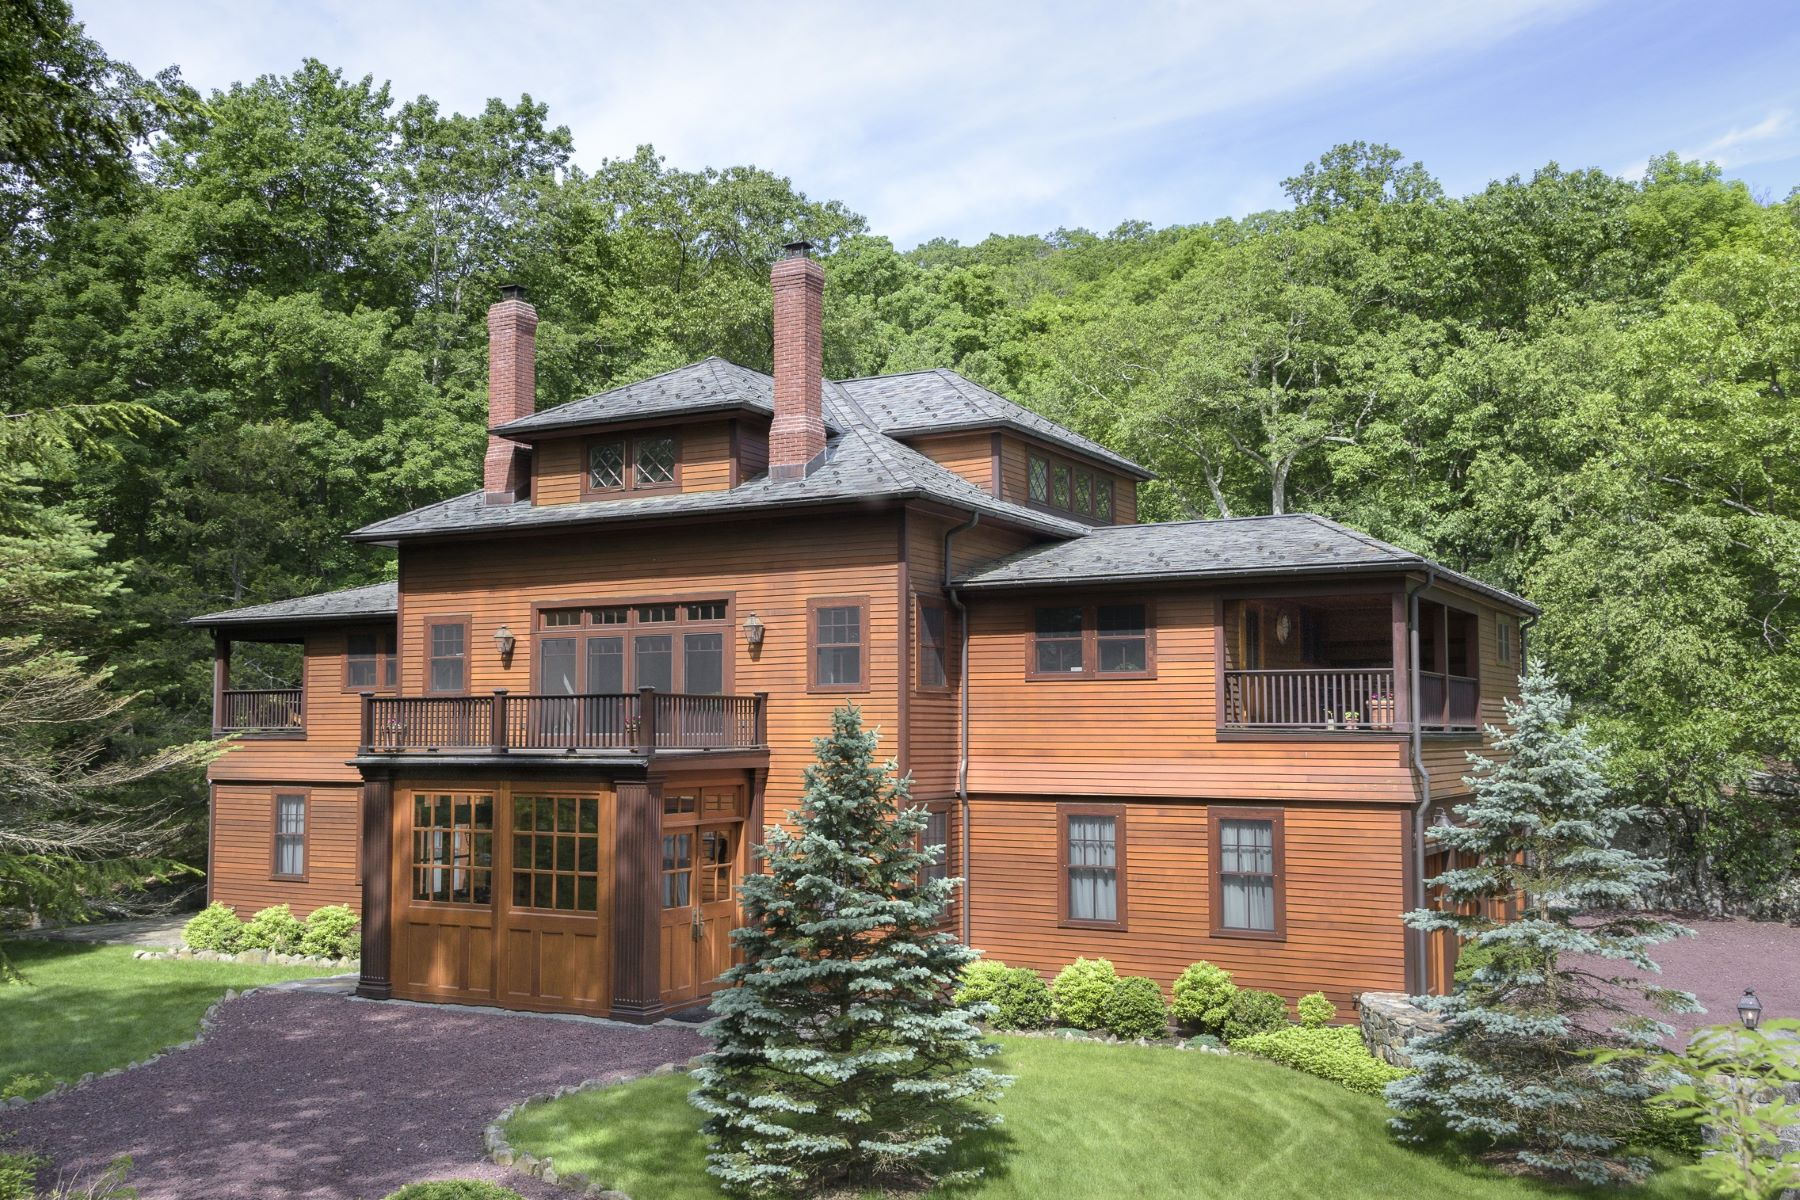 Casa Unifamiliar por un Venta en Patterson Brook Carriage House 18 Patterson Brook Rd Tuxedo Park, Nueva York, 10987 Estados Unidos